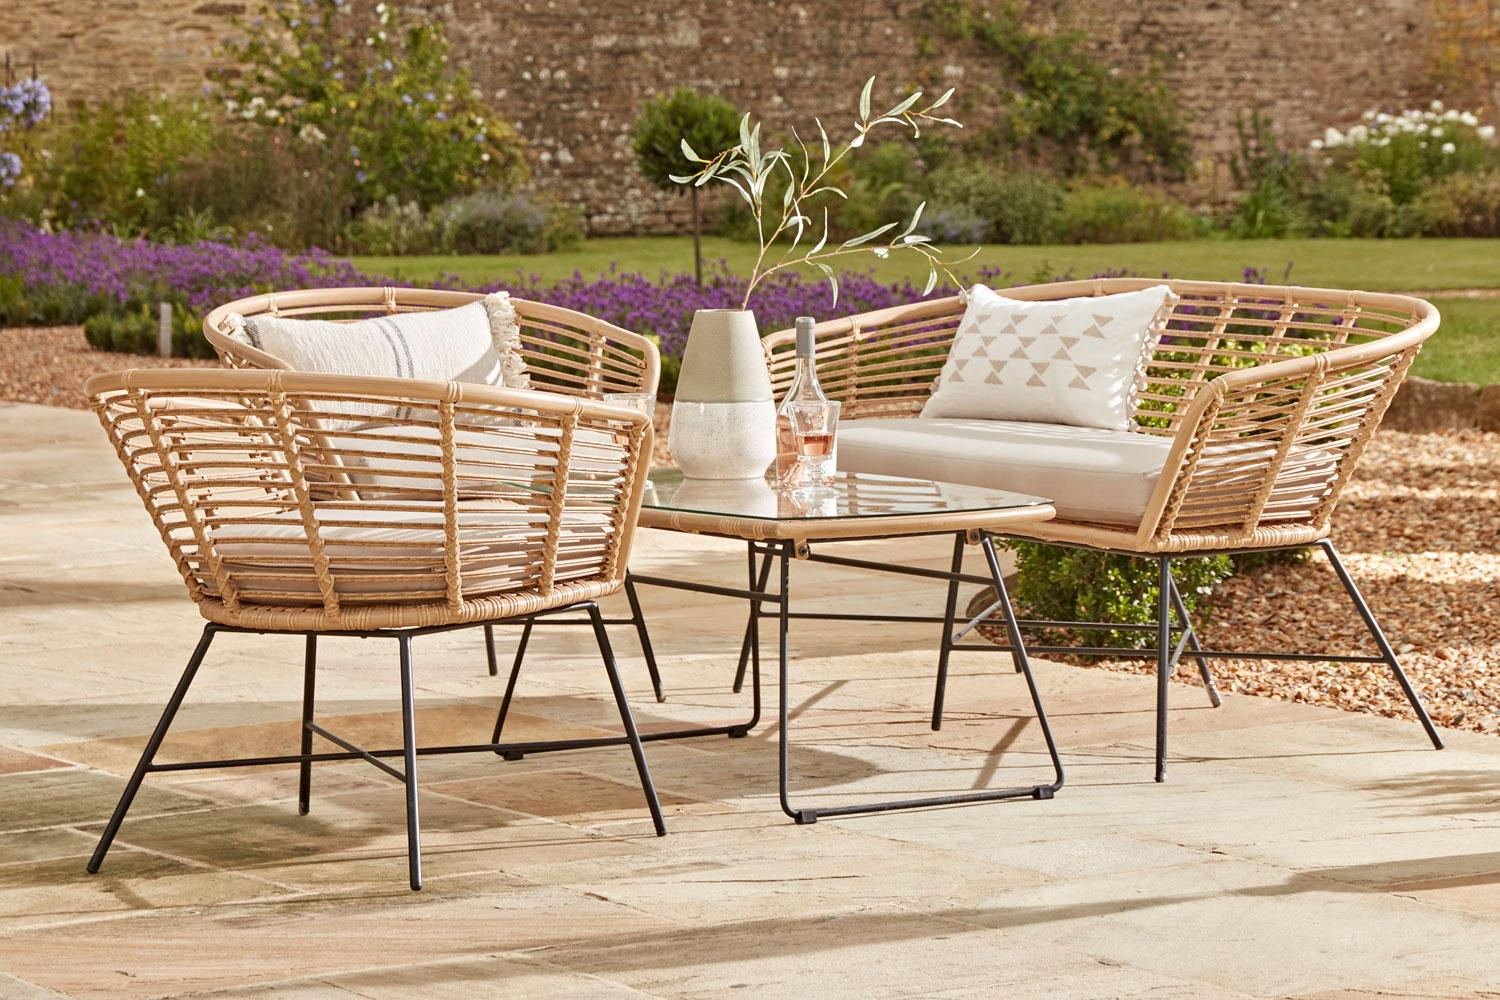 Best Rattan Garden Furniture 2020 London Evening Standard Evening Standard